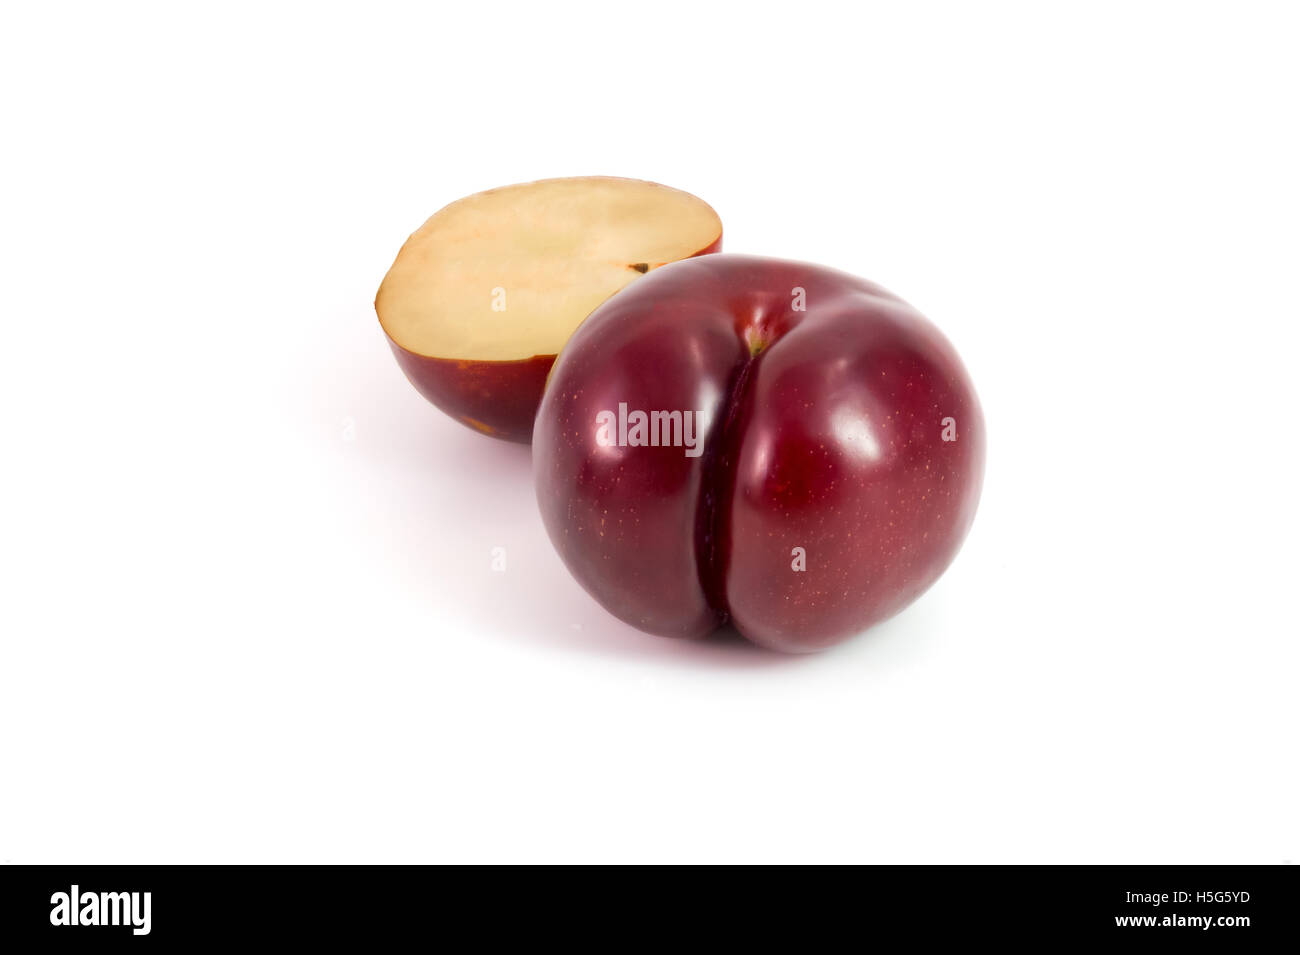 Prunes Plum fruit isolated on white - Stock Image